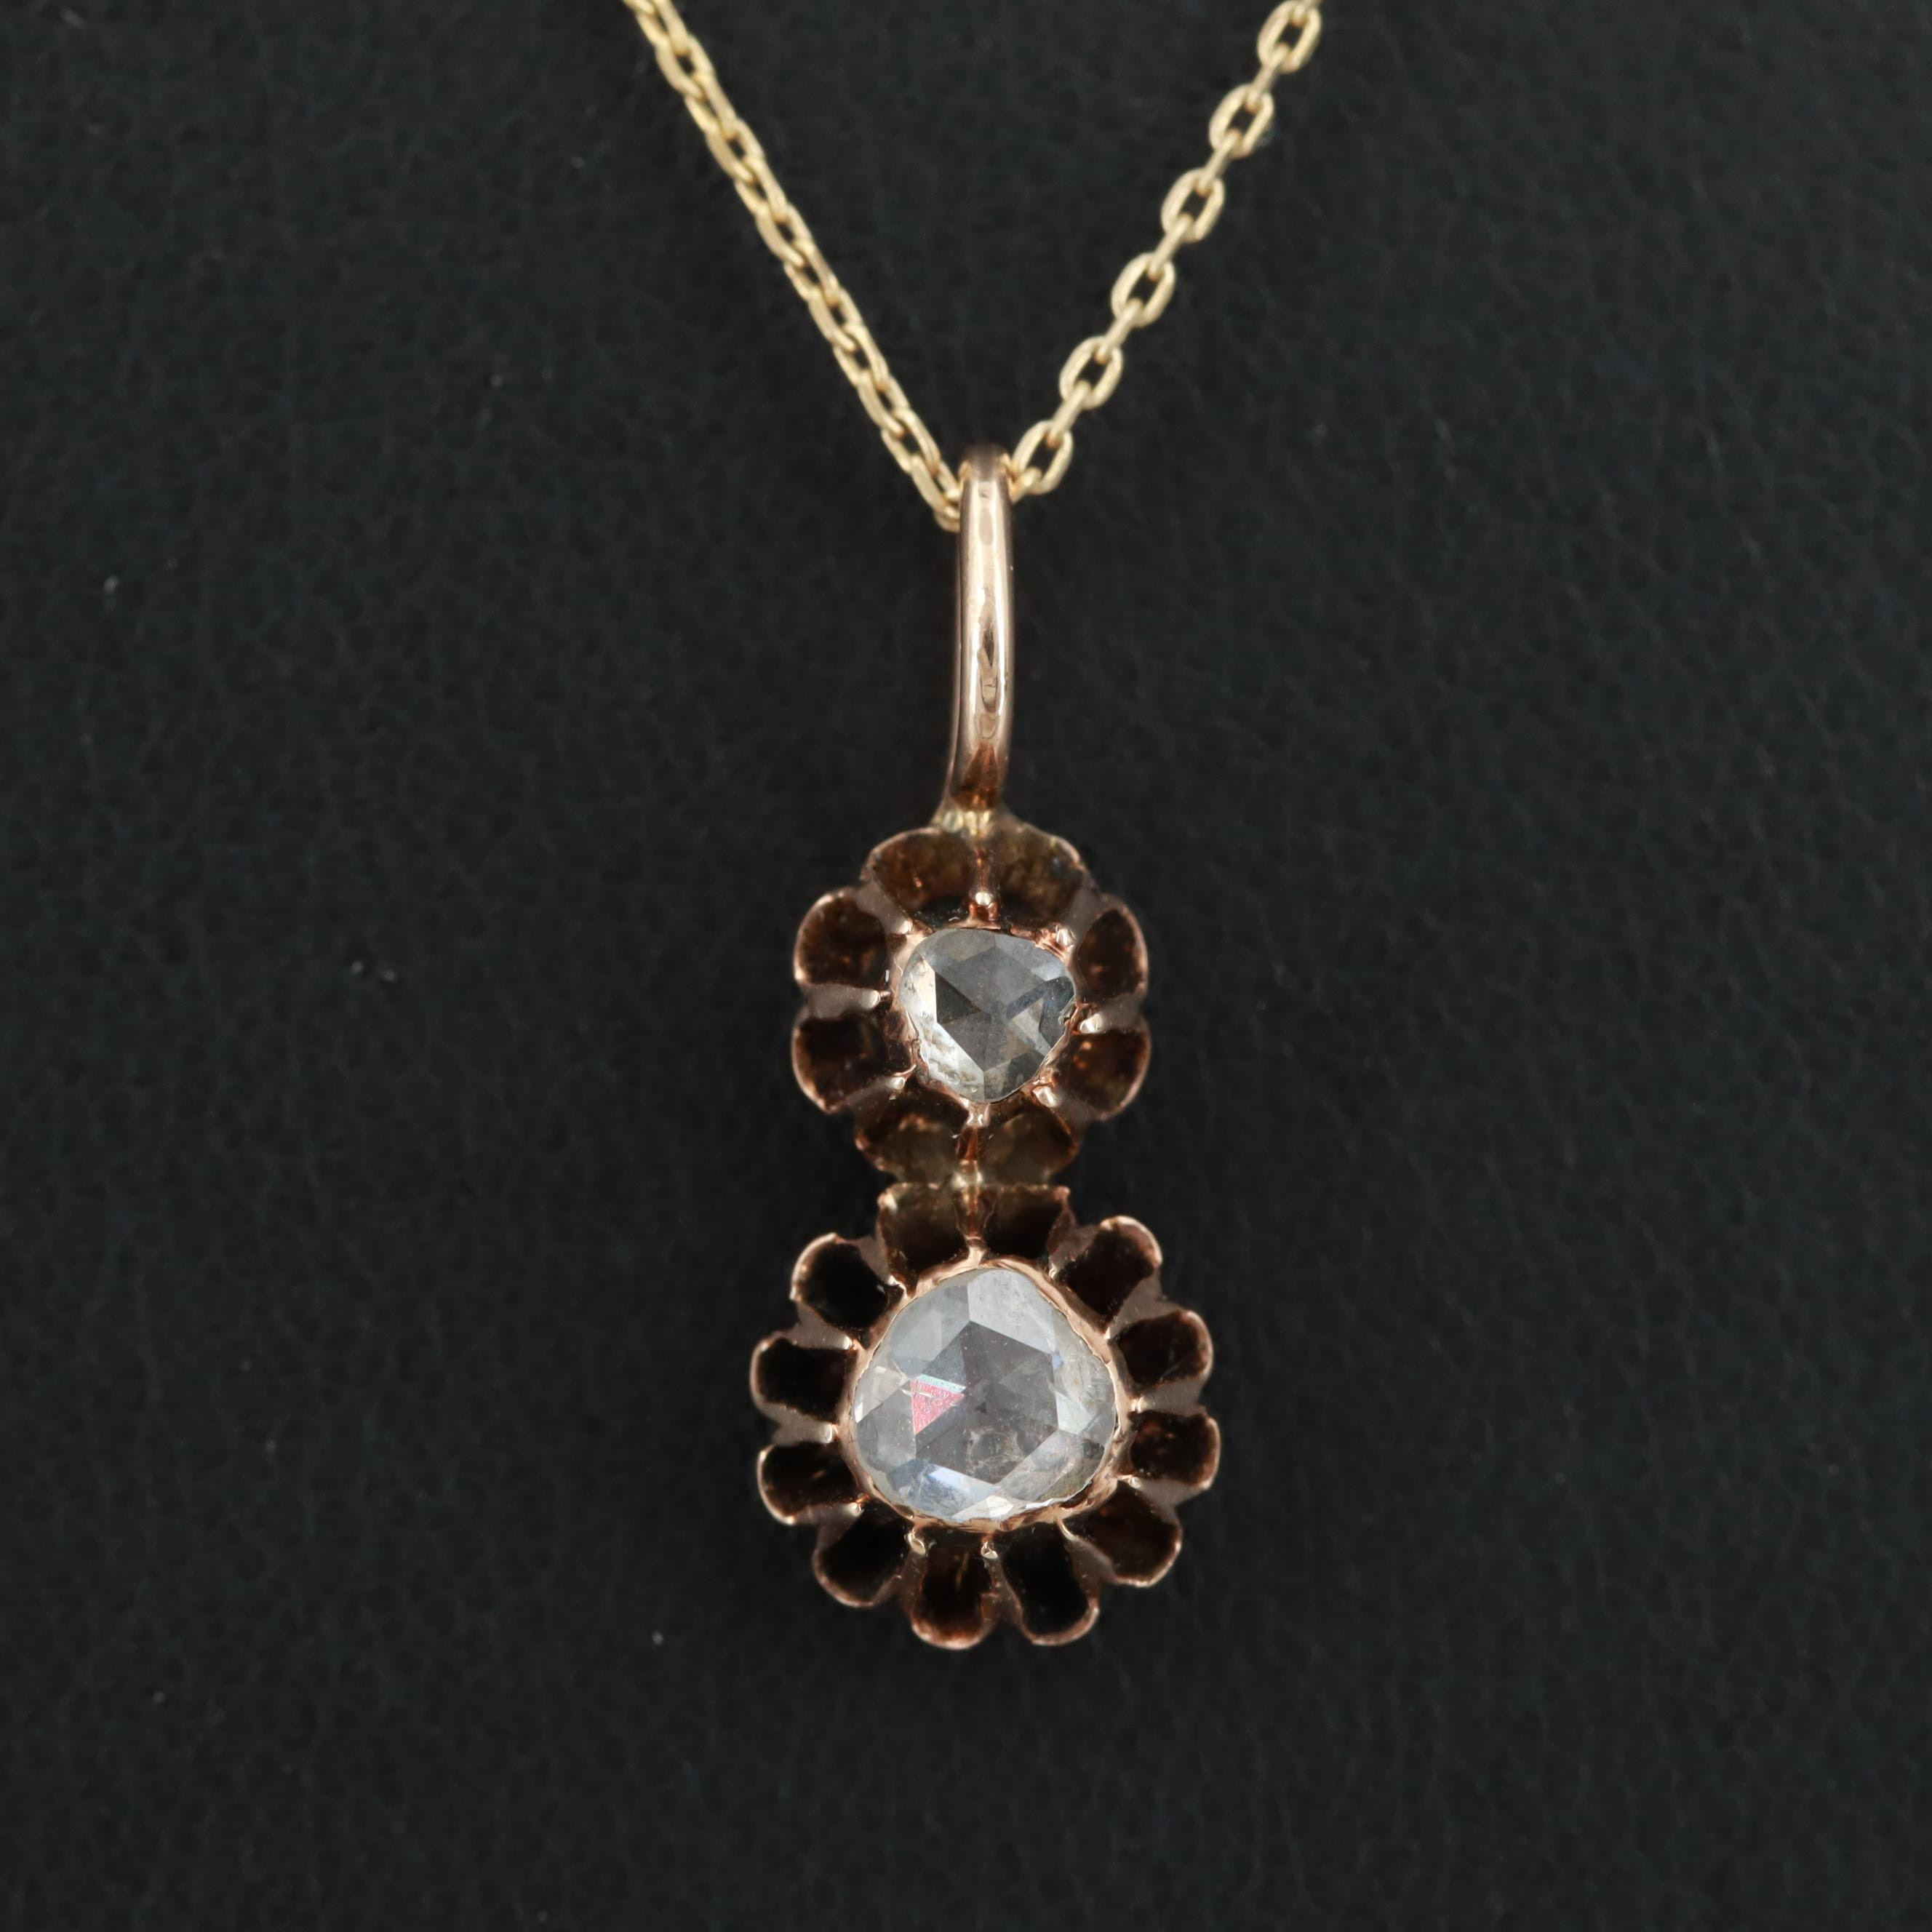 Vintage 14K Rose Gold Rose Cut Diamond Pendant on 14K Yellow Gold Chain Necklace